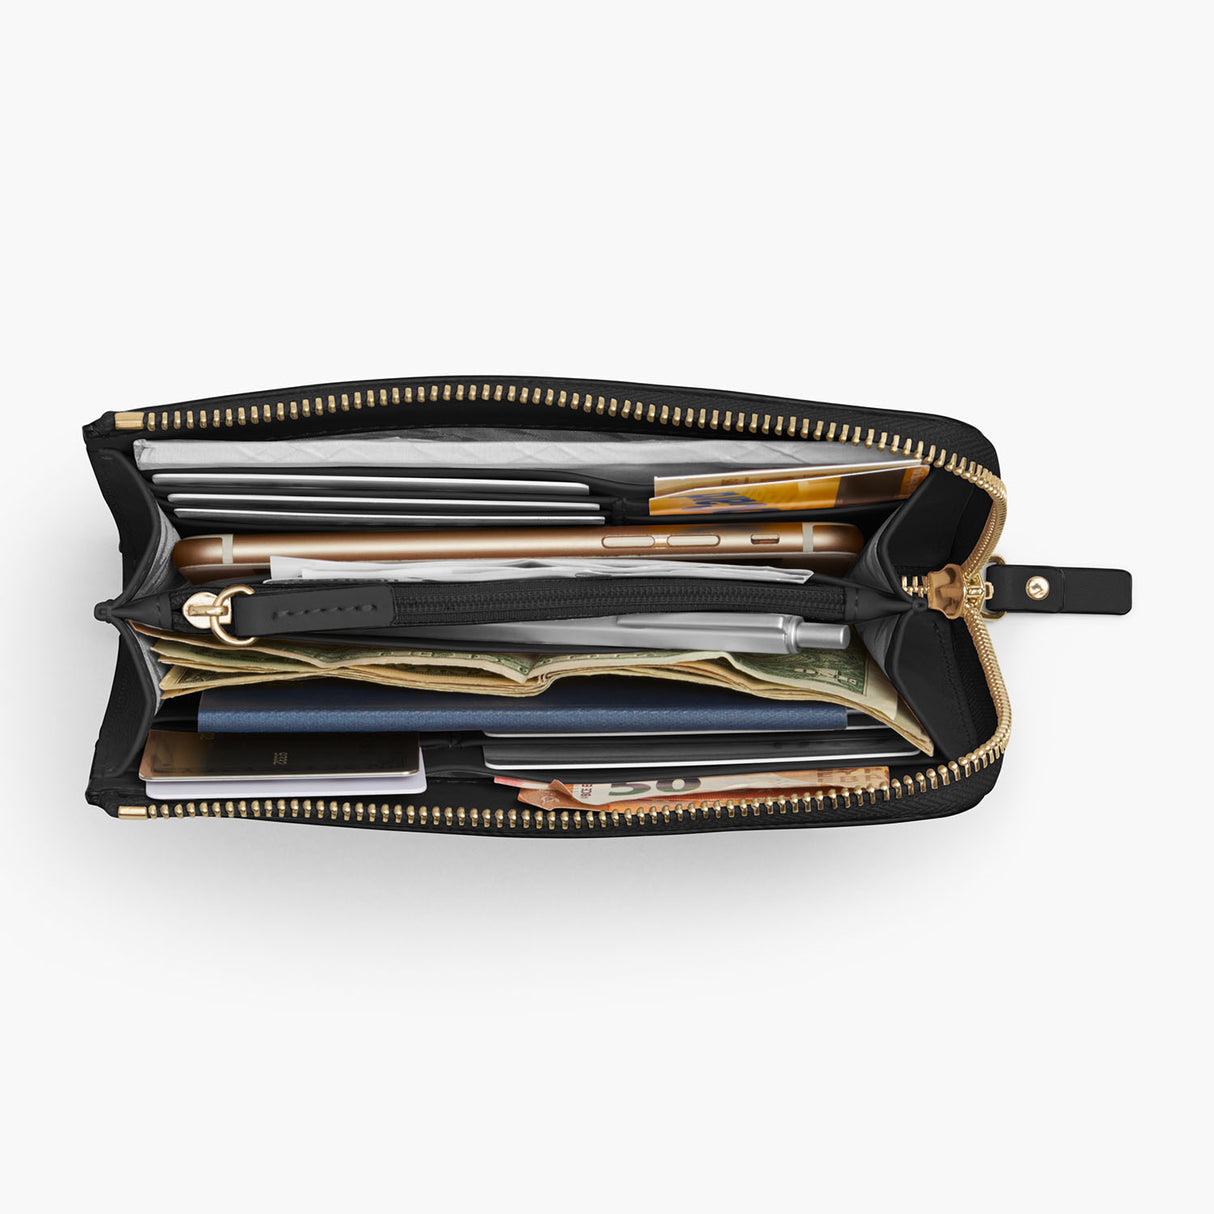 Overhead Interior Propped - The Leather Wallet - Nappa Leather - Black / Gold / Grey - Small Accessory - Lo & Sons